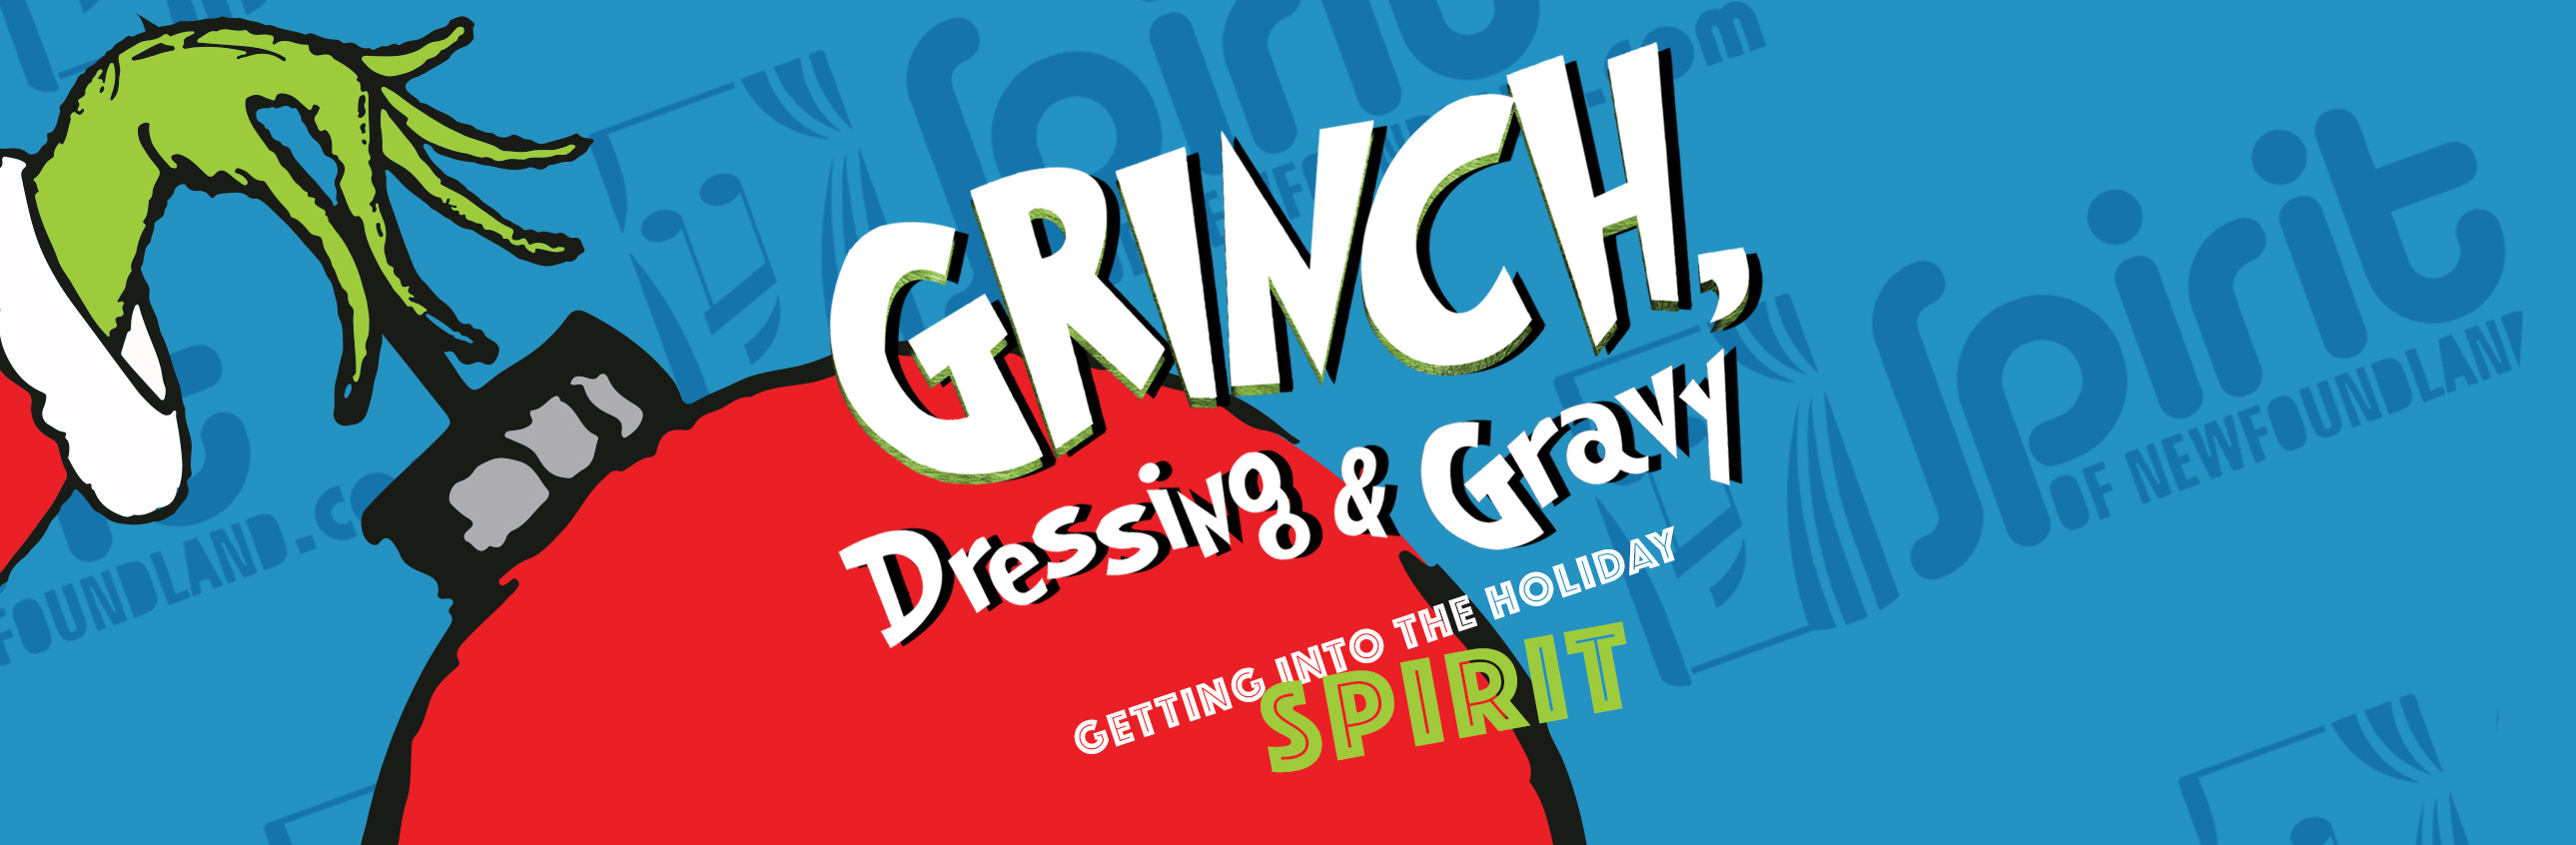 Grinch, Dressing and Gravy: Getting Into the Holiday Spirit